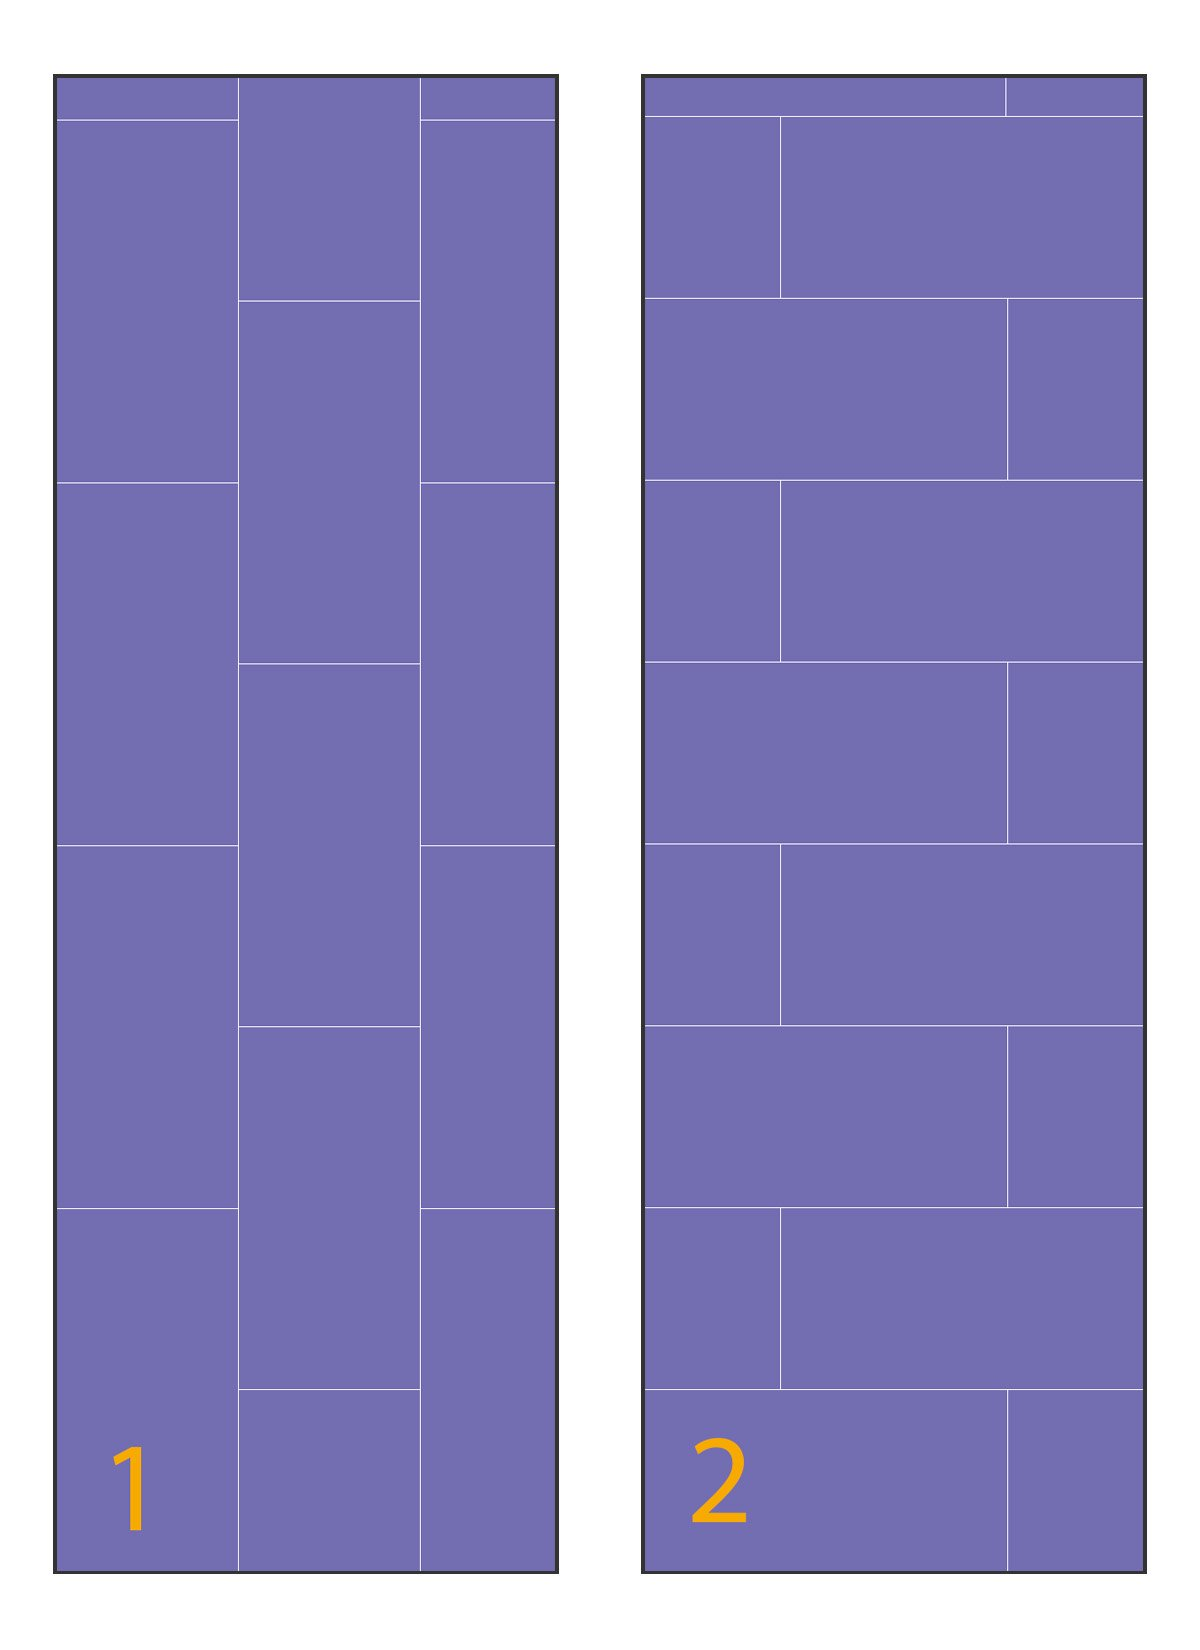 possible drywall layouts